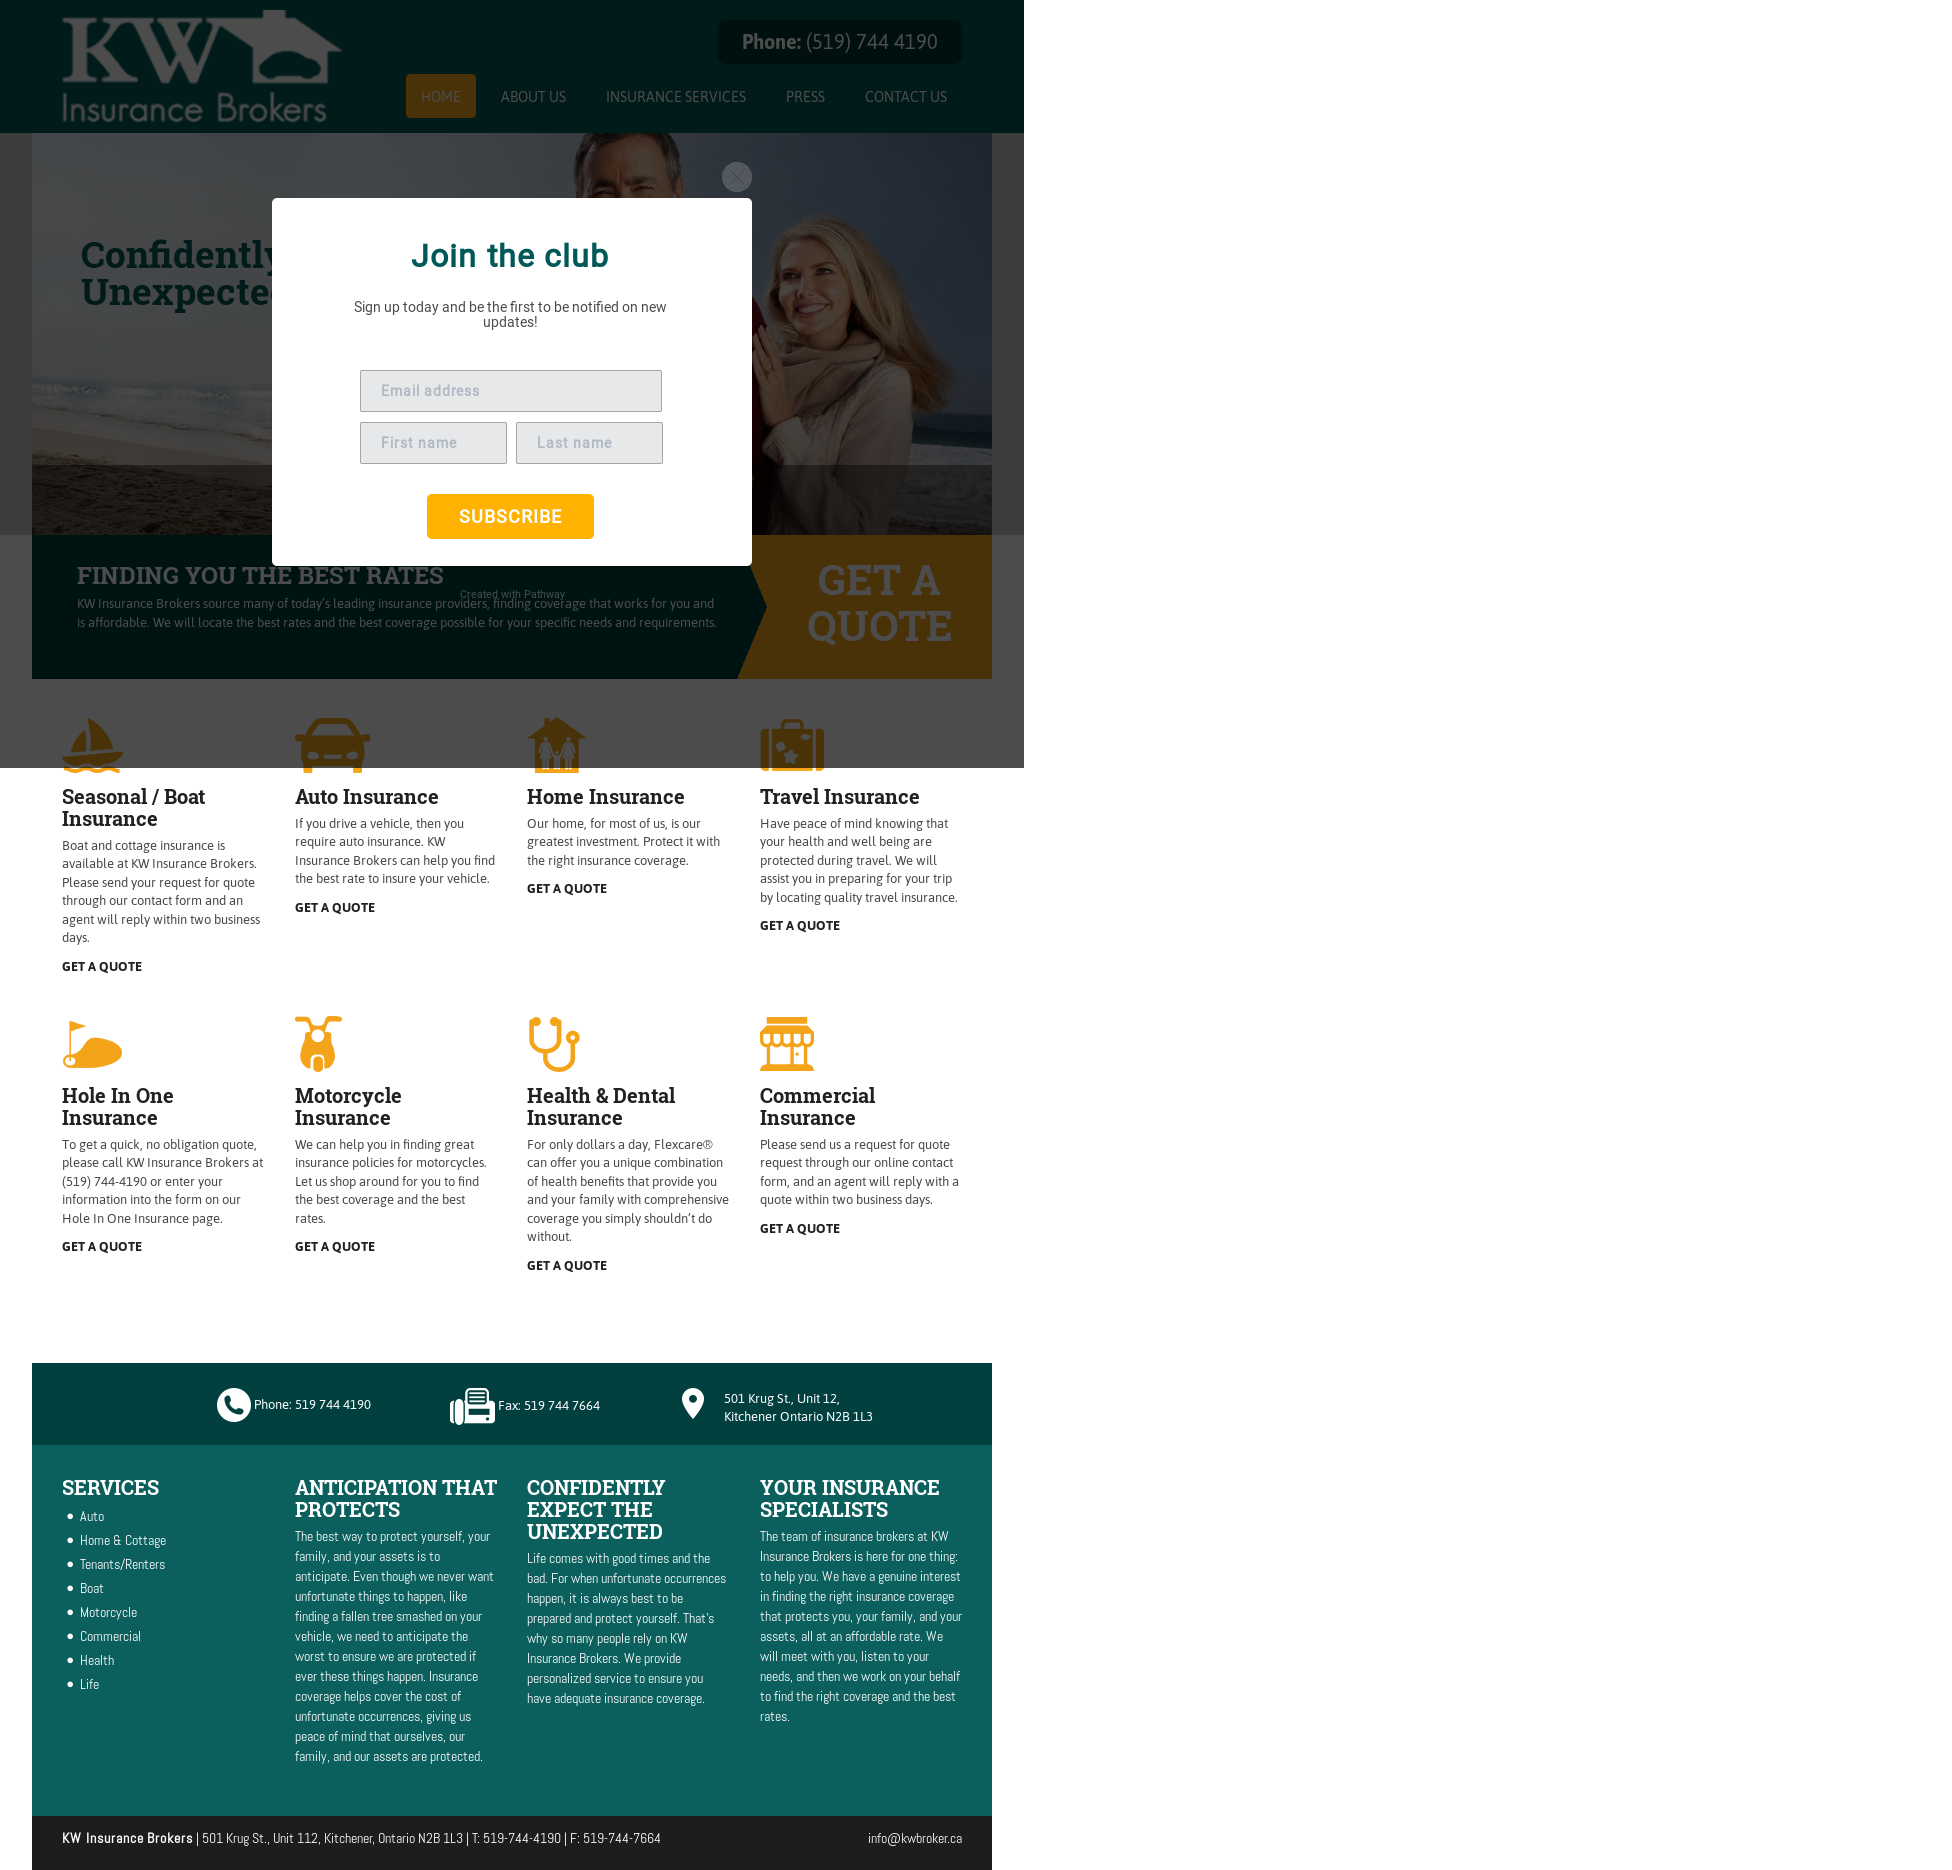 KW Insurance Brokers Competitors, Revenue and Employees - Owler ...